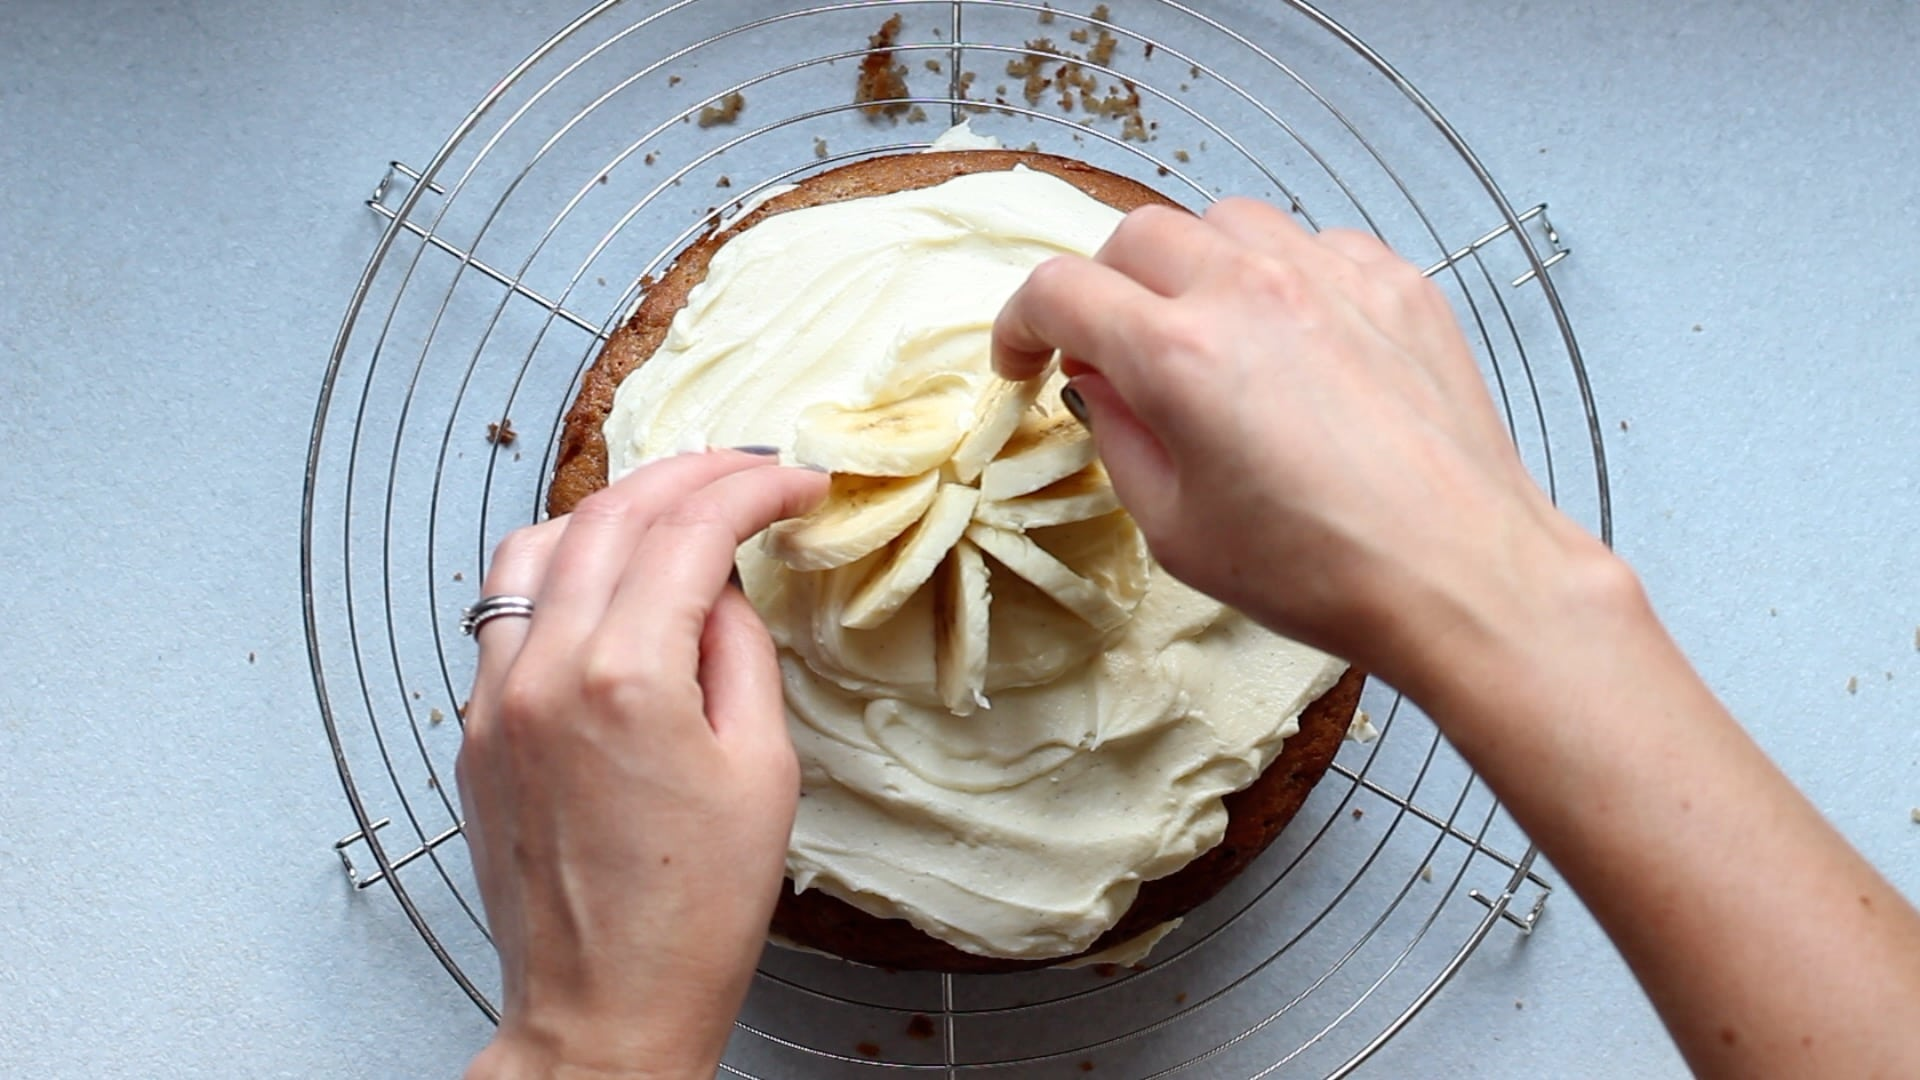 decorate with freshly sliced banana and honey